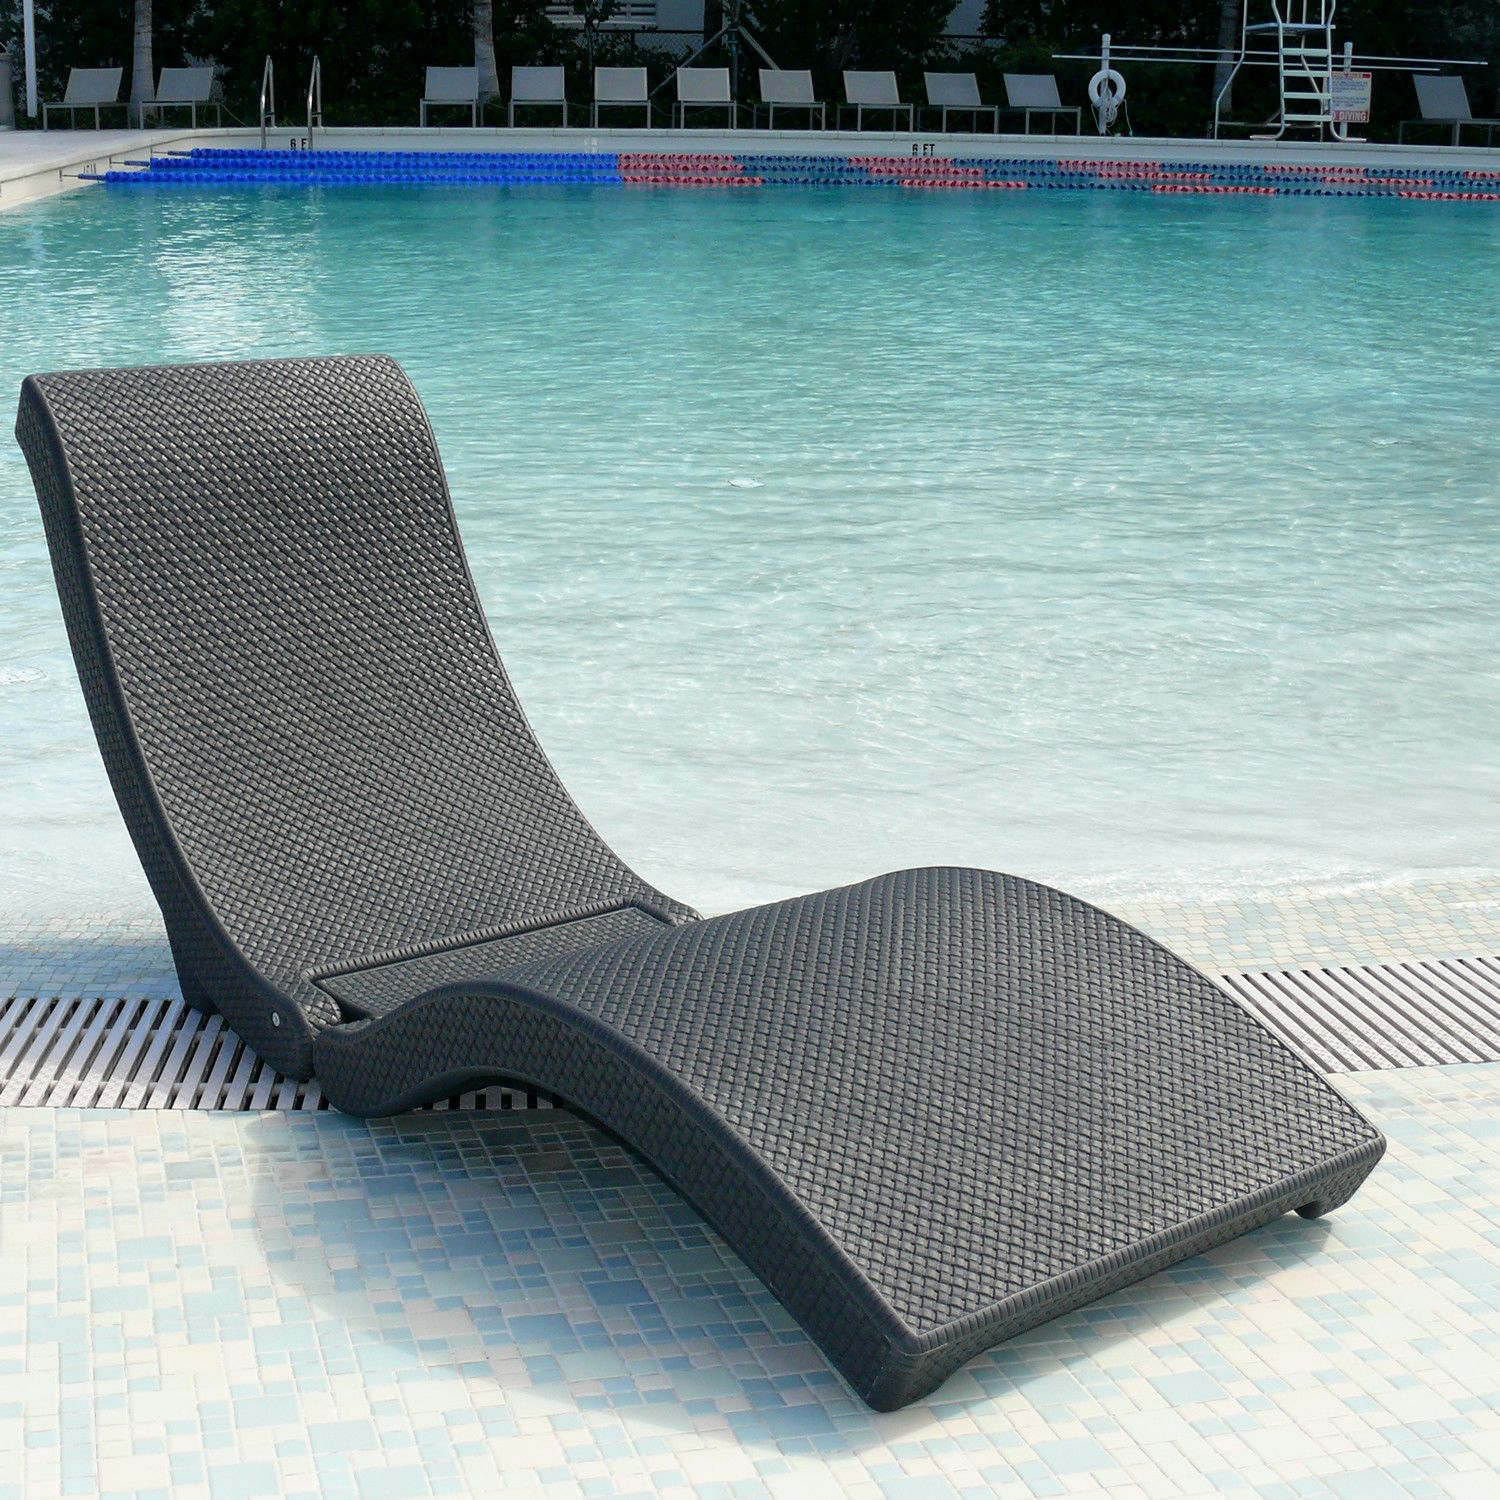 Water in Pool Chaise Lounge Chairs Outdoor Furniture